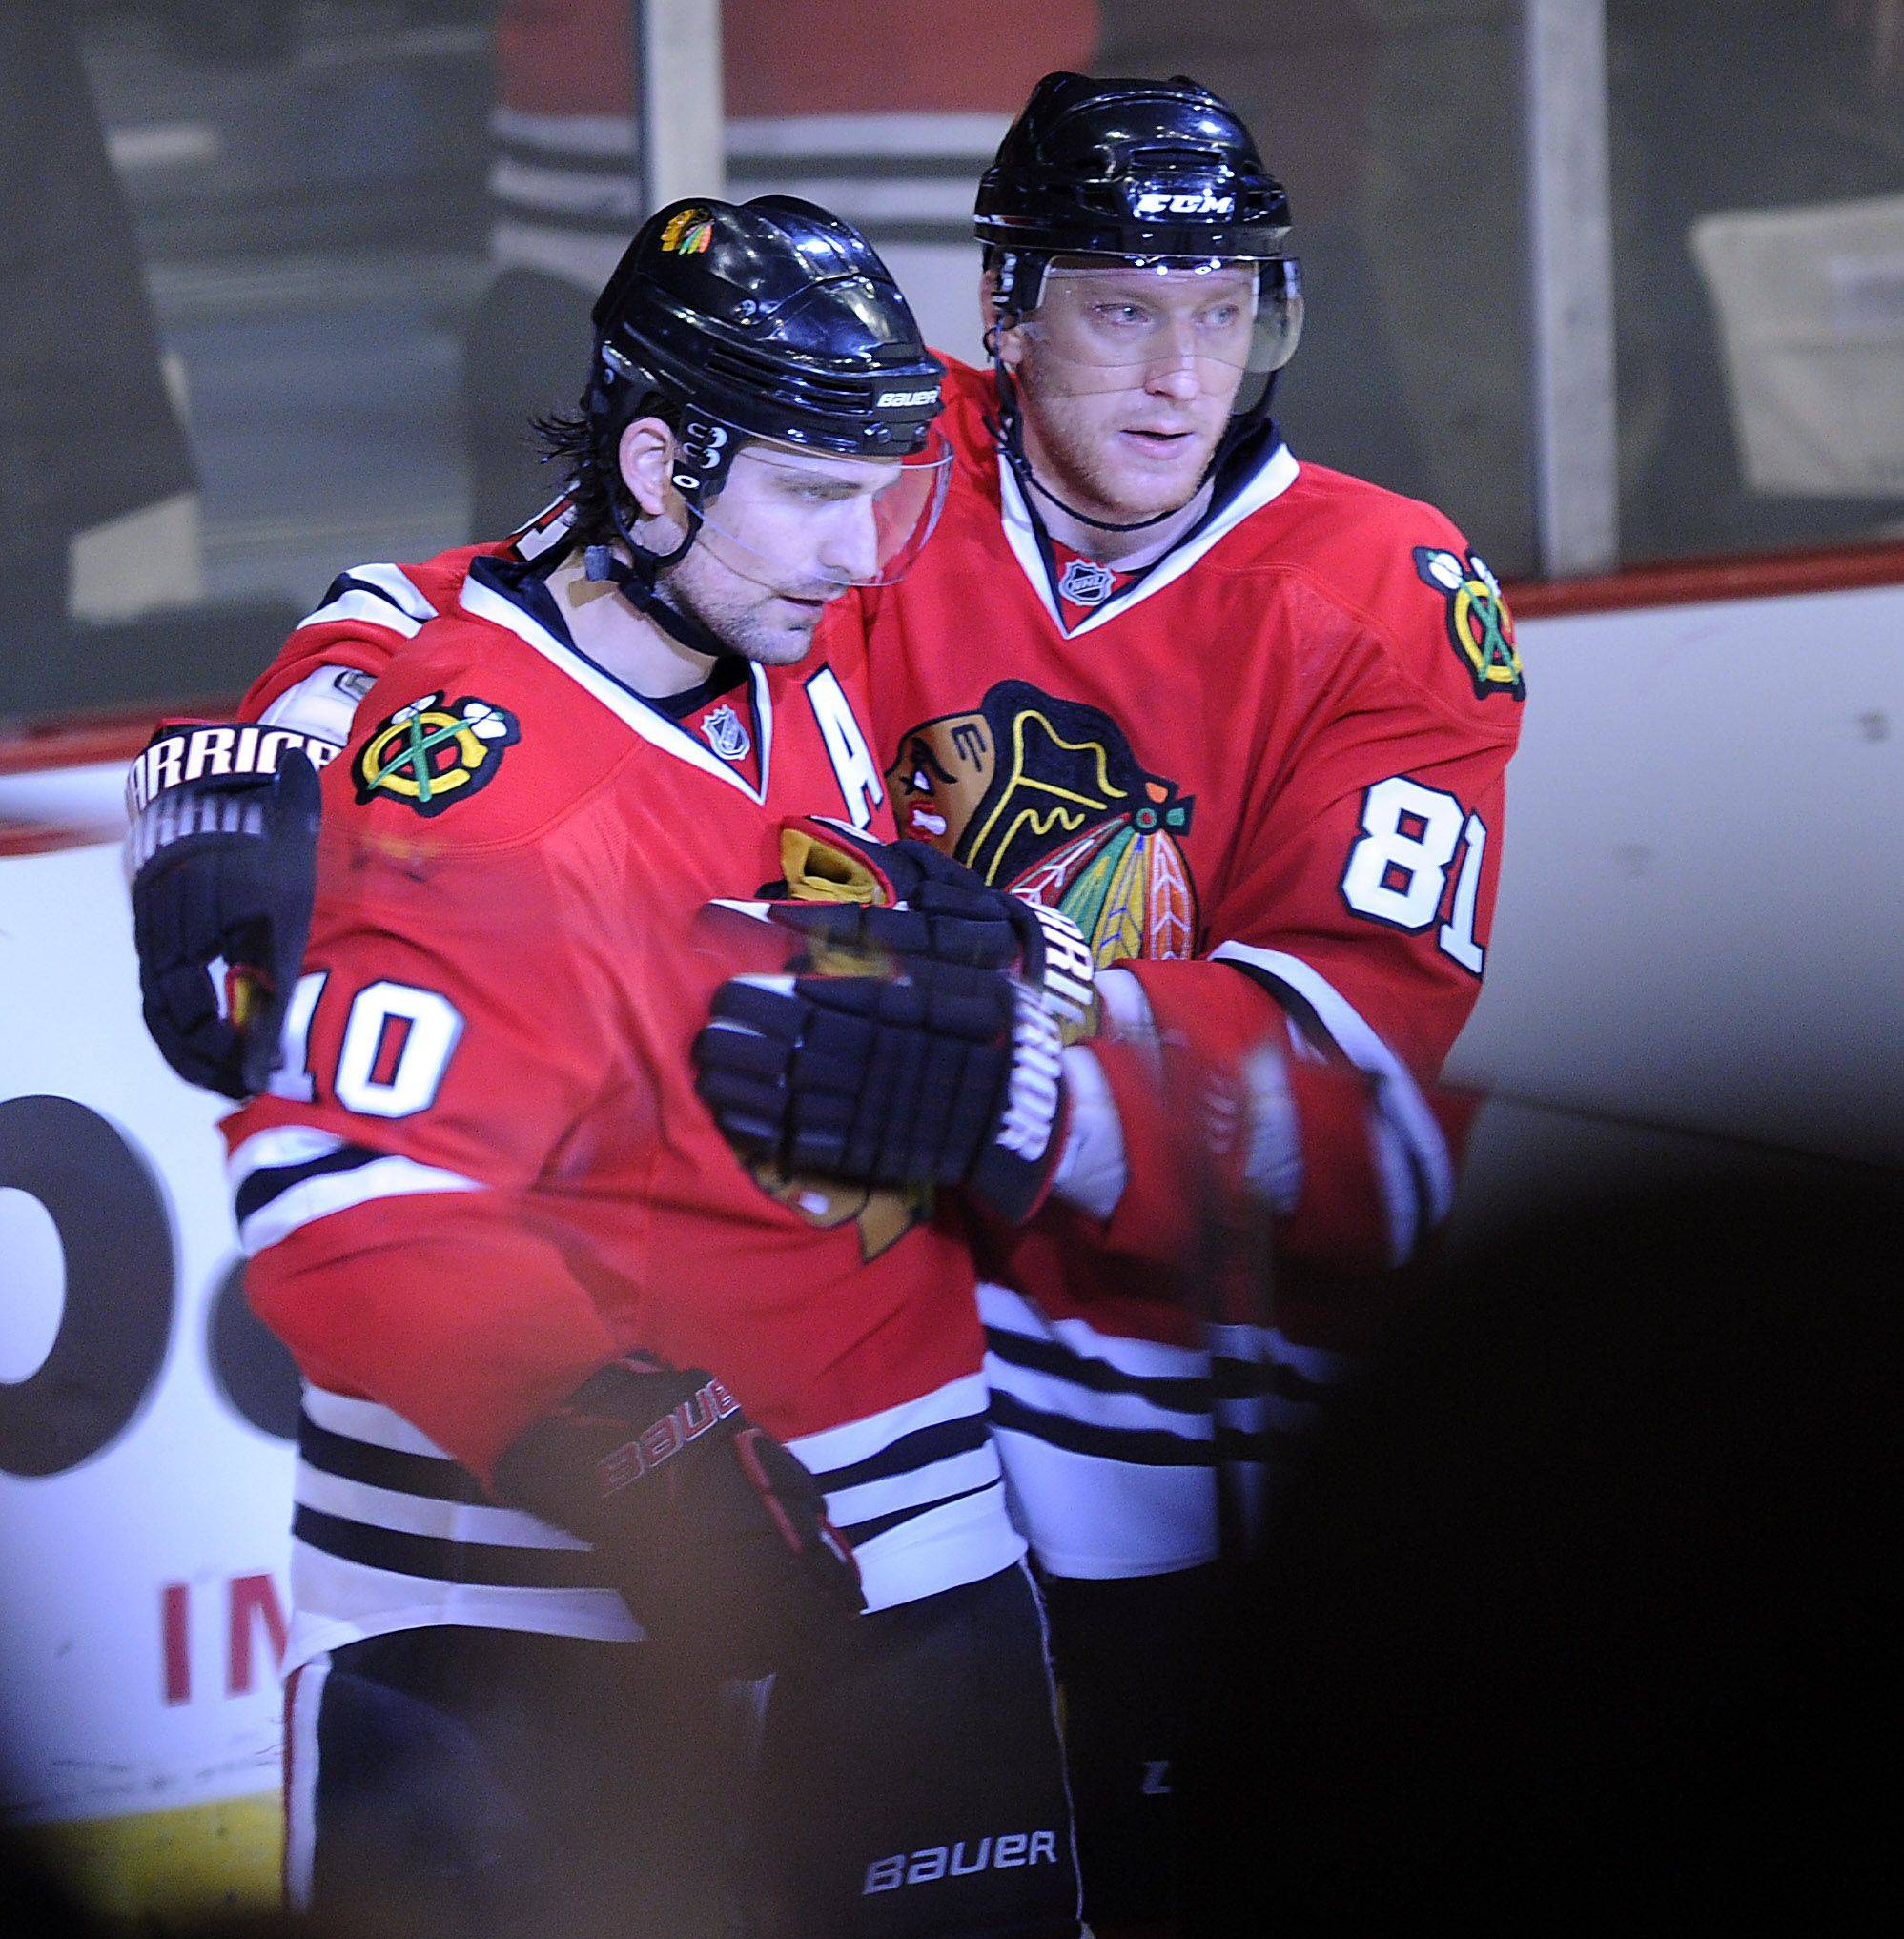 Patrick Sharp celebrates his third-period goal with teammate Marian Hossa.